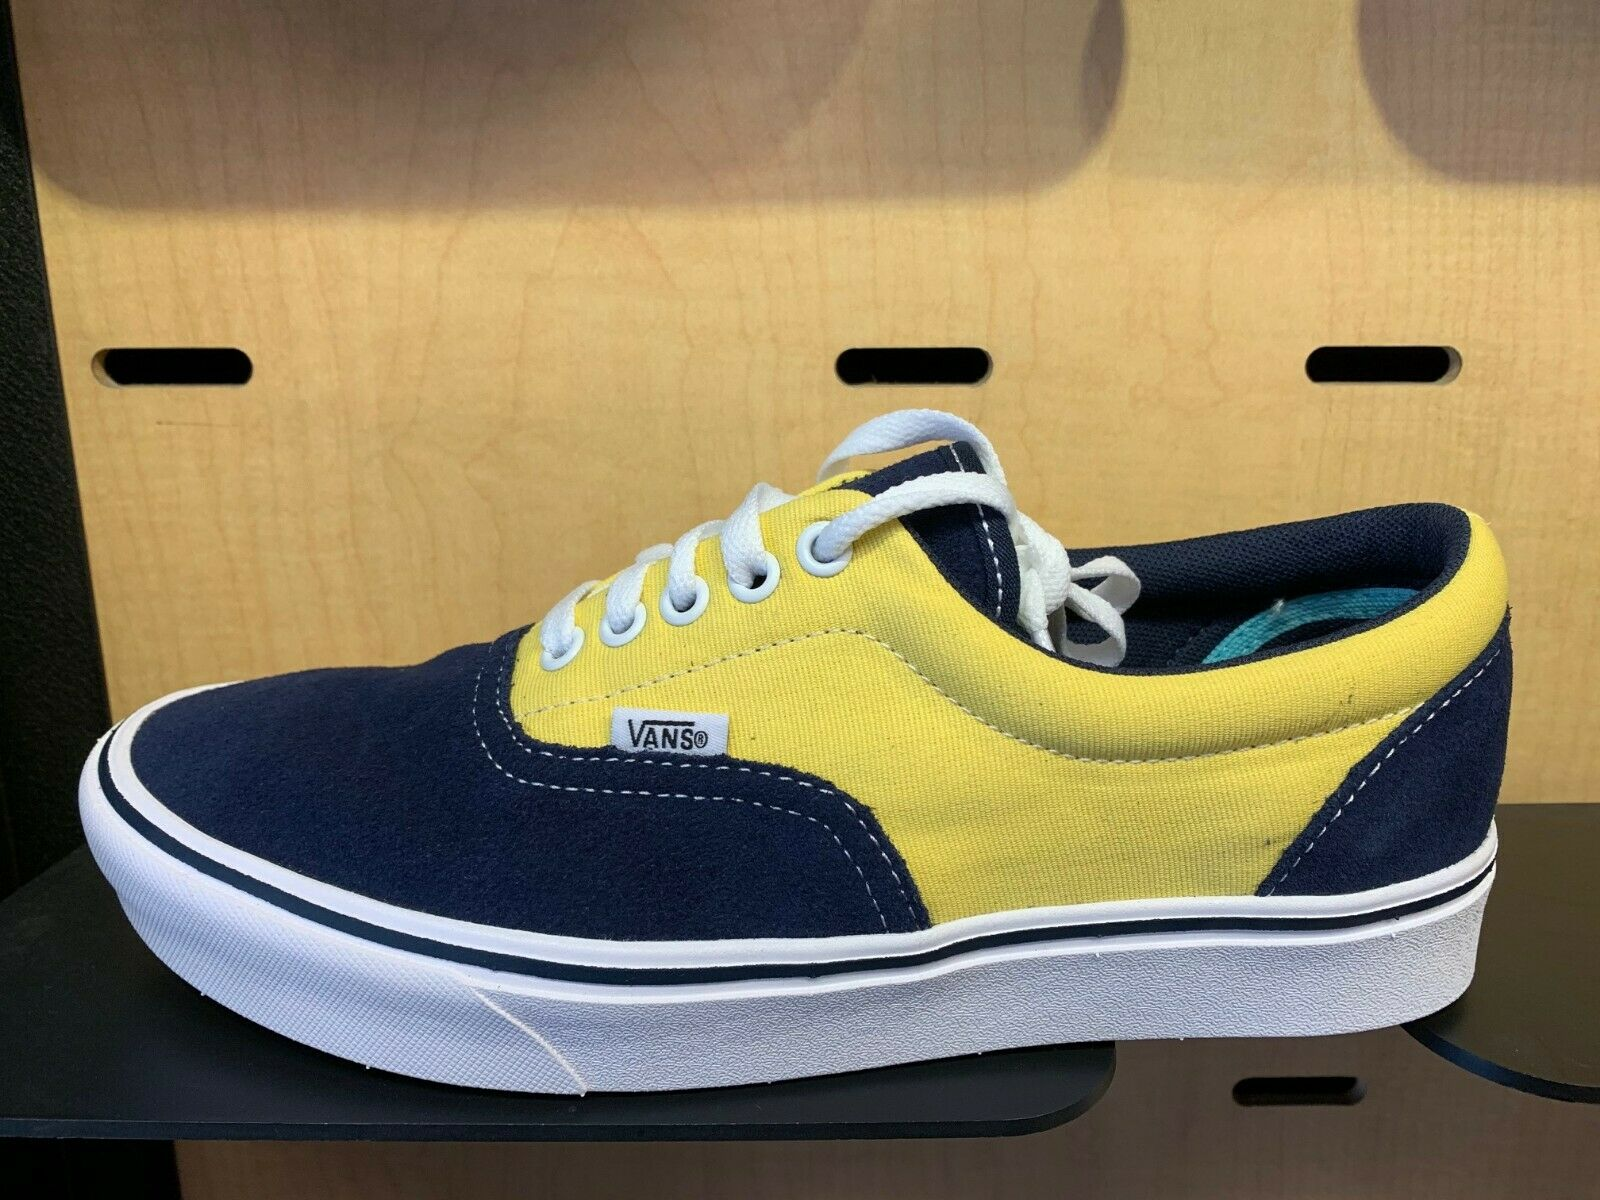 Vans Era Comfy Cush bluee Yellow White Canvas Size 8-13 New Authentic